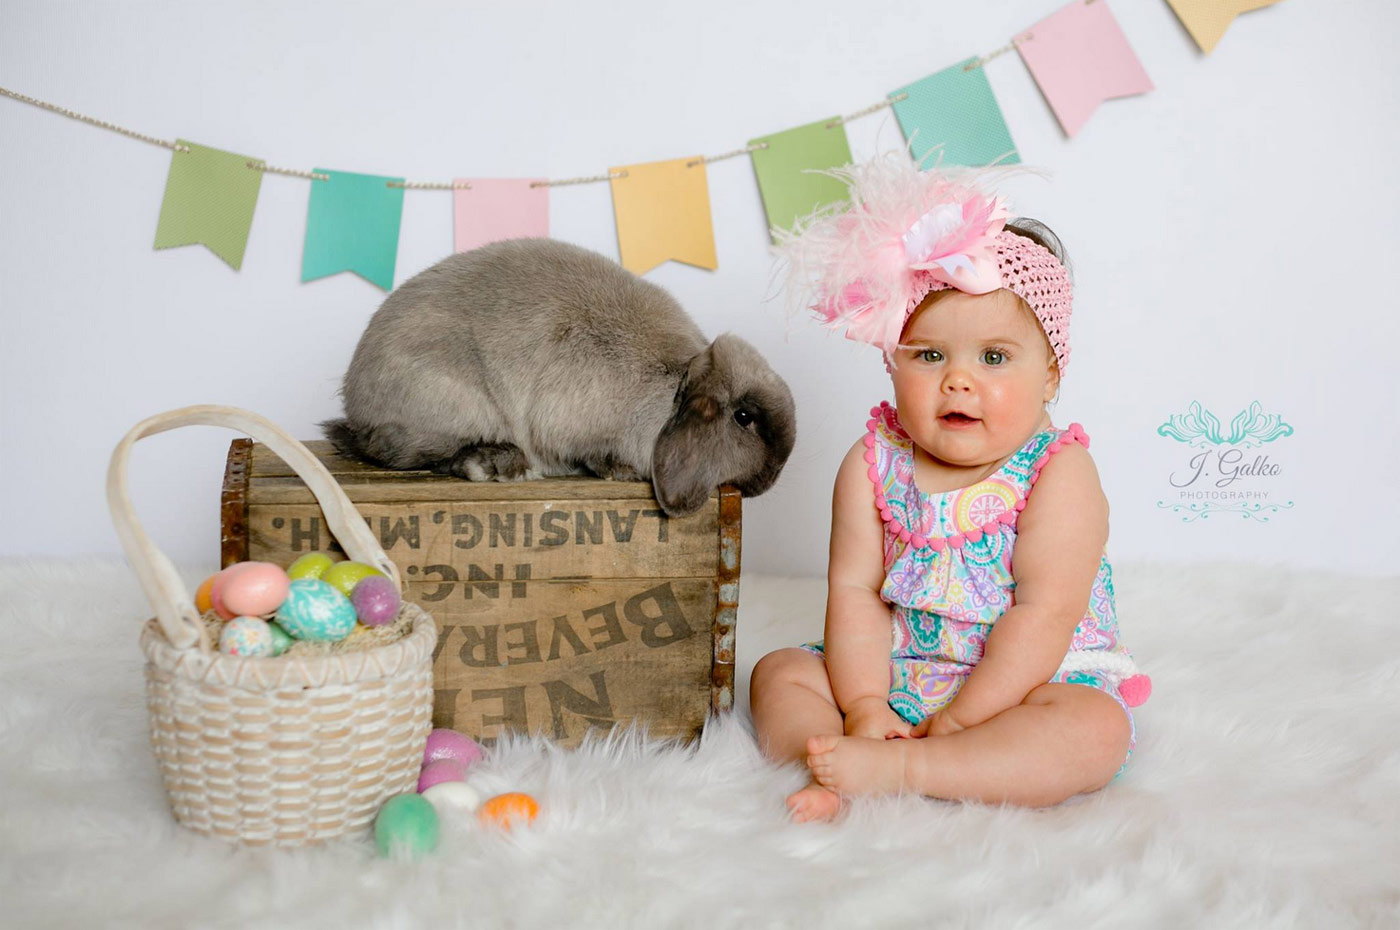 Easter photography by J. Galko Photography